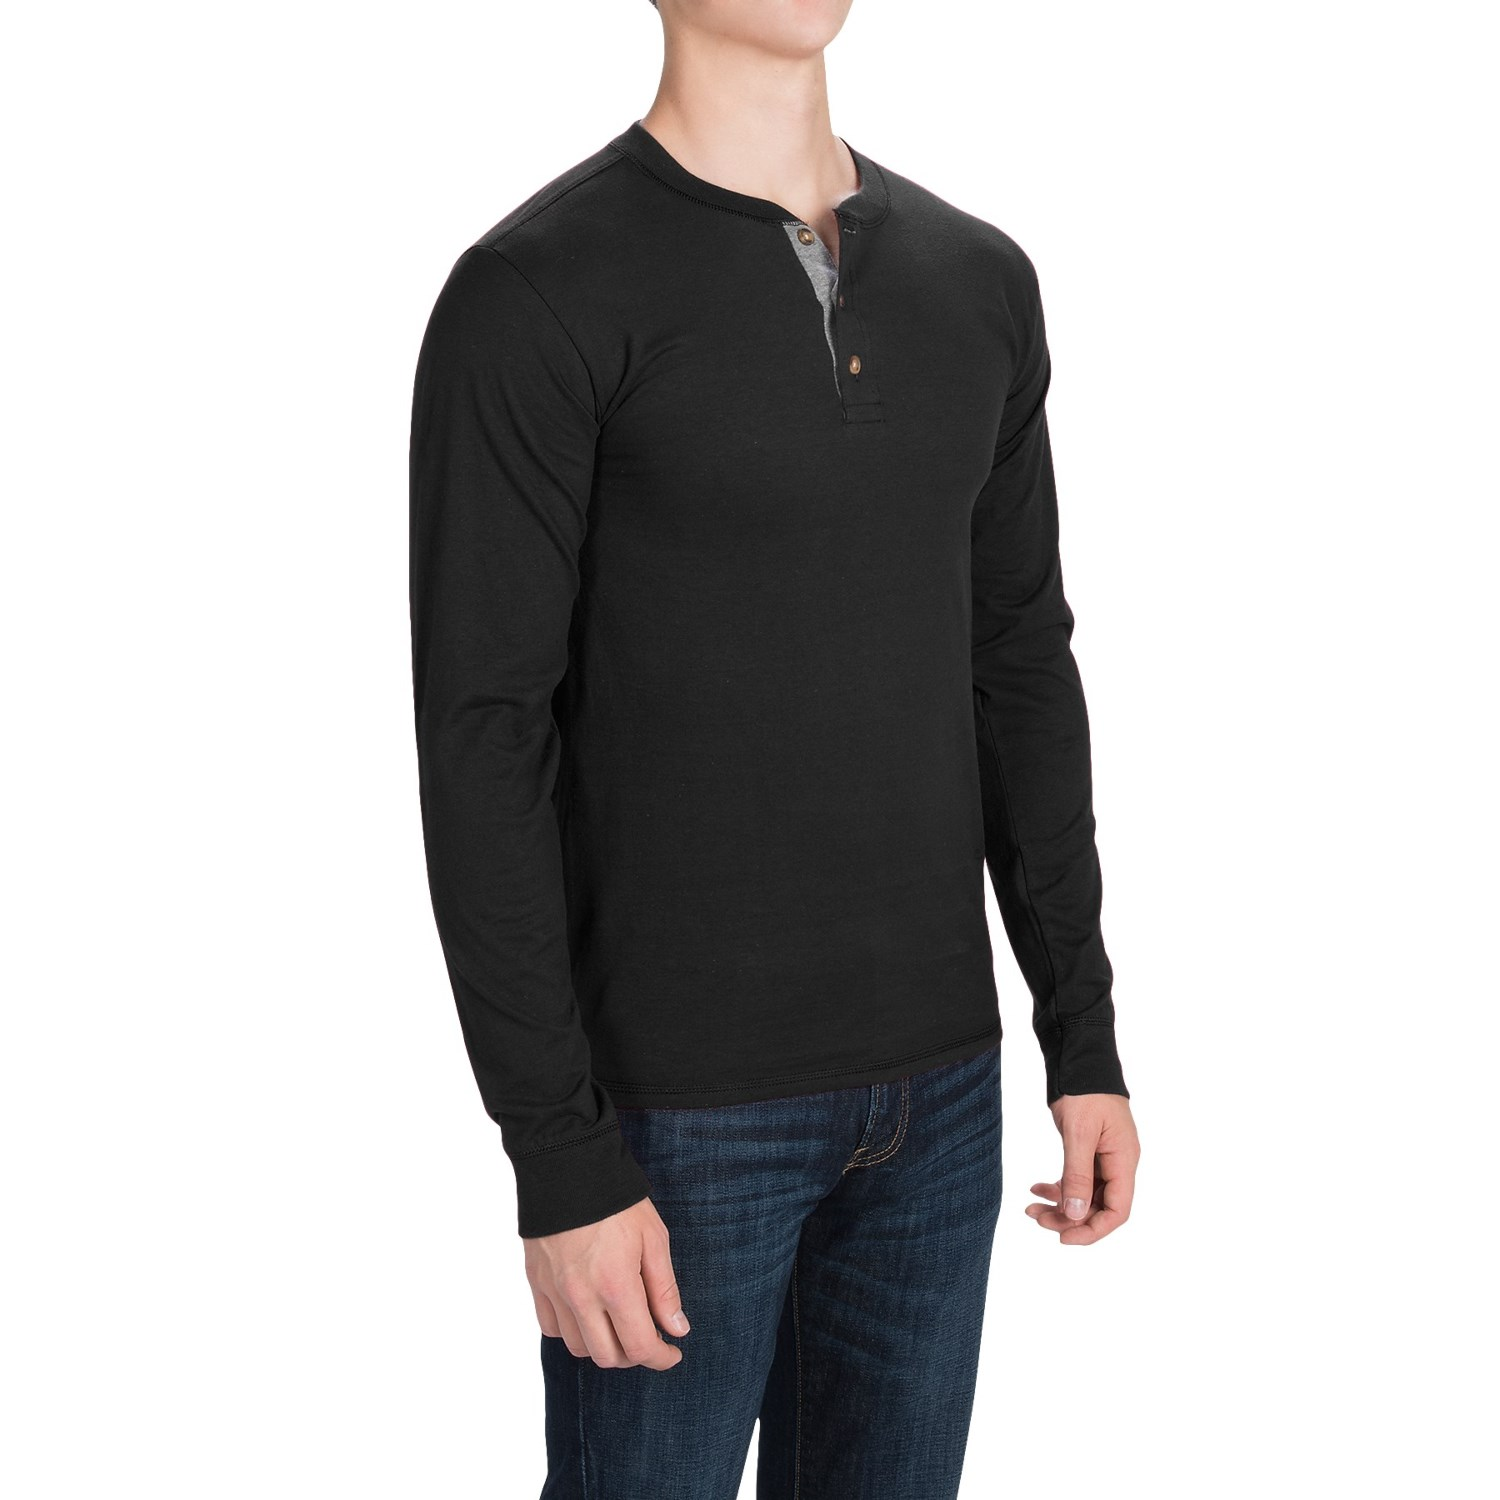 Shop for mens henley long sleeve online at Target. Free shipping on purchases over $35 and save 5% every day with your Target REDcard.